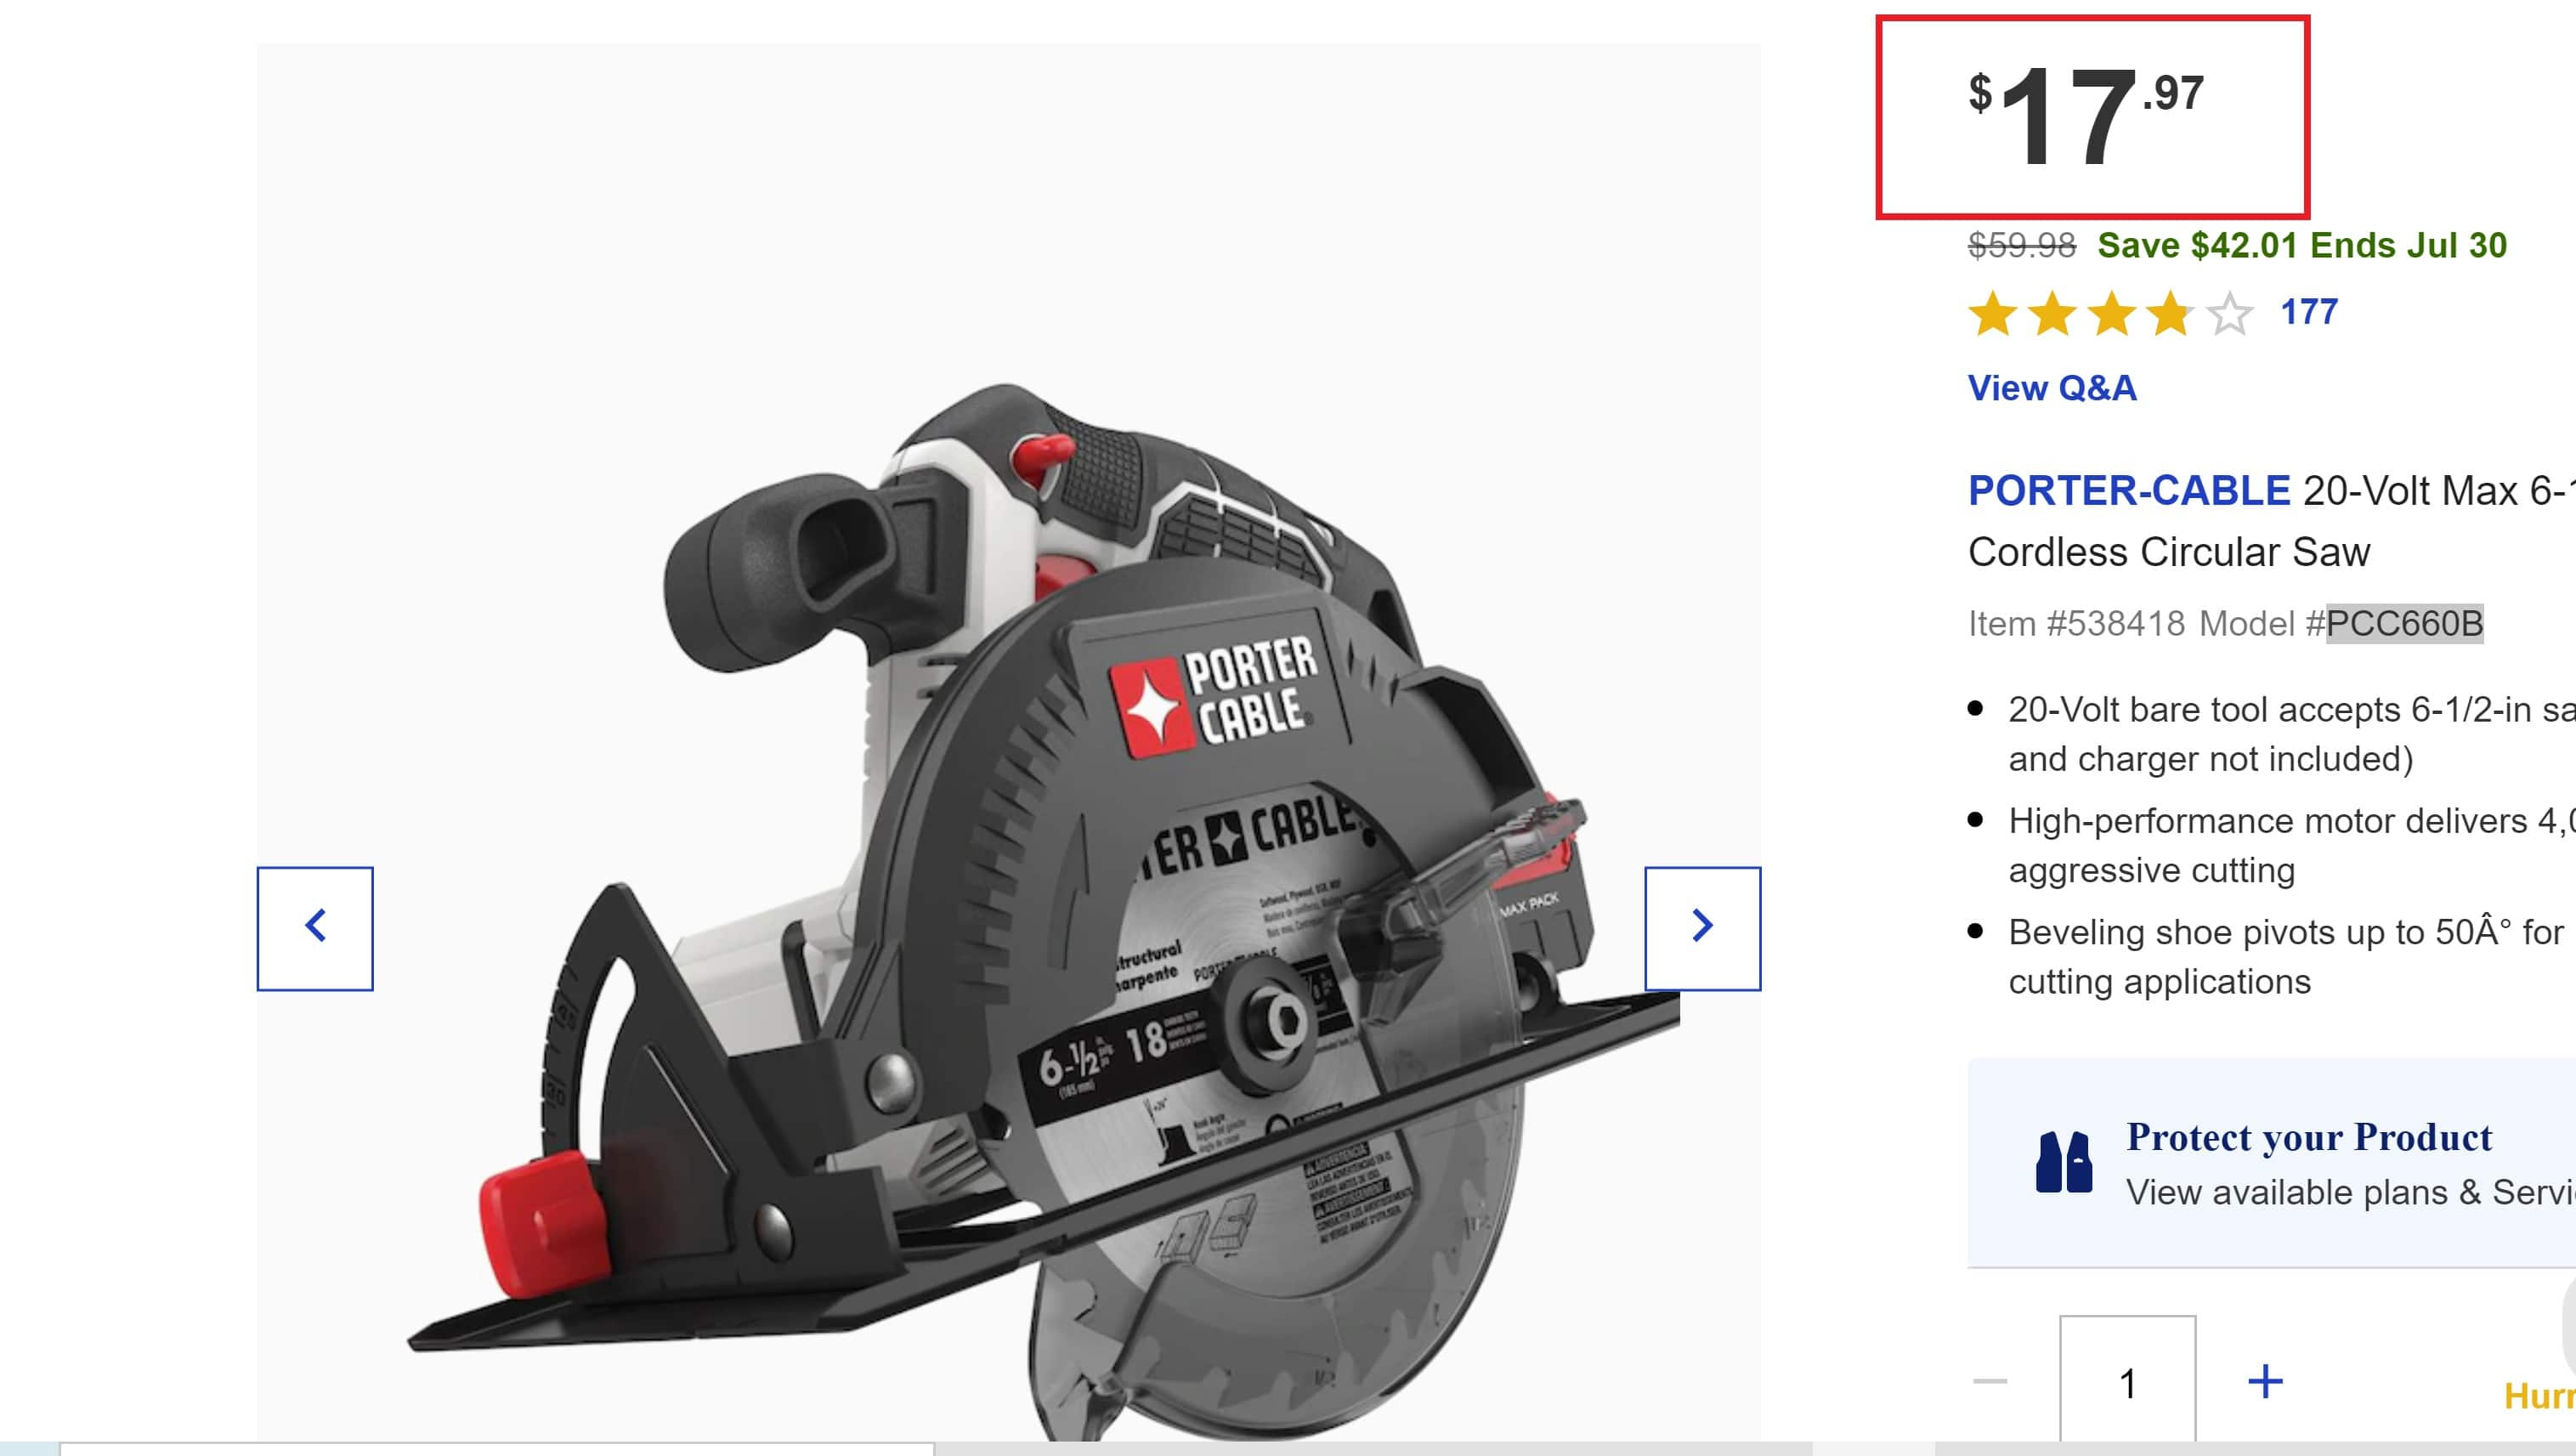 PORTER-CABLE 20-Volt Max 6-1/2-in Cordless Circular Saw YMMV( $17.97 + In-Store )